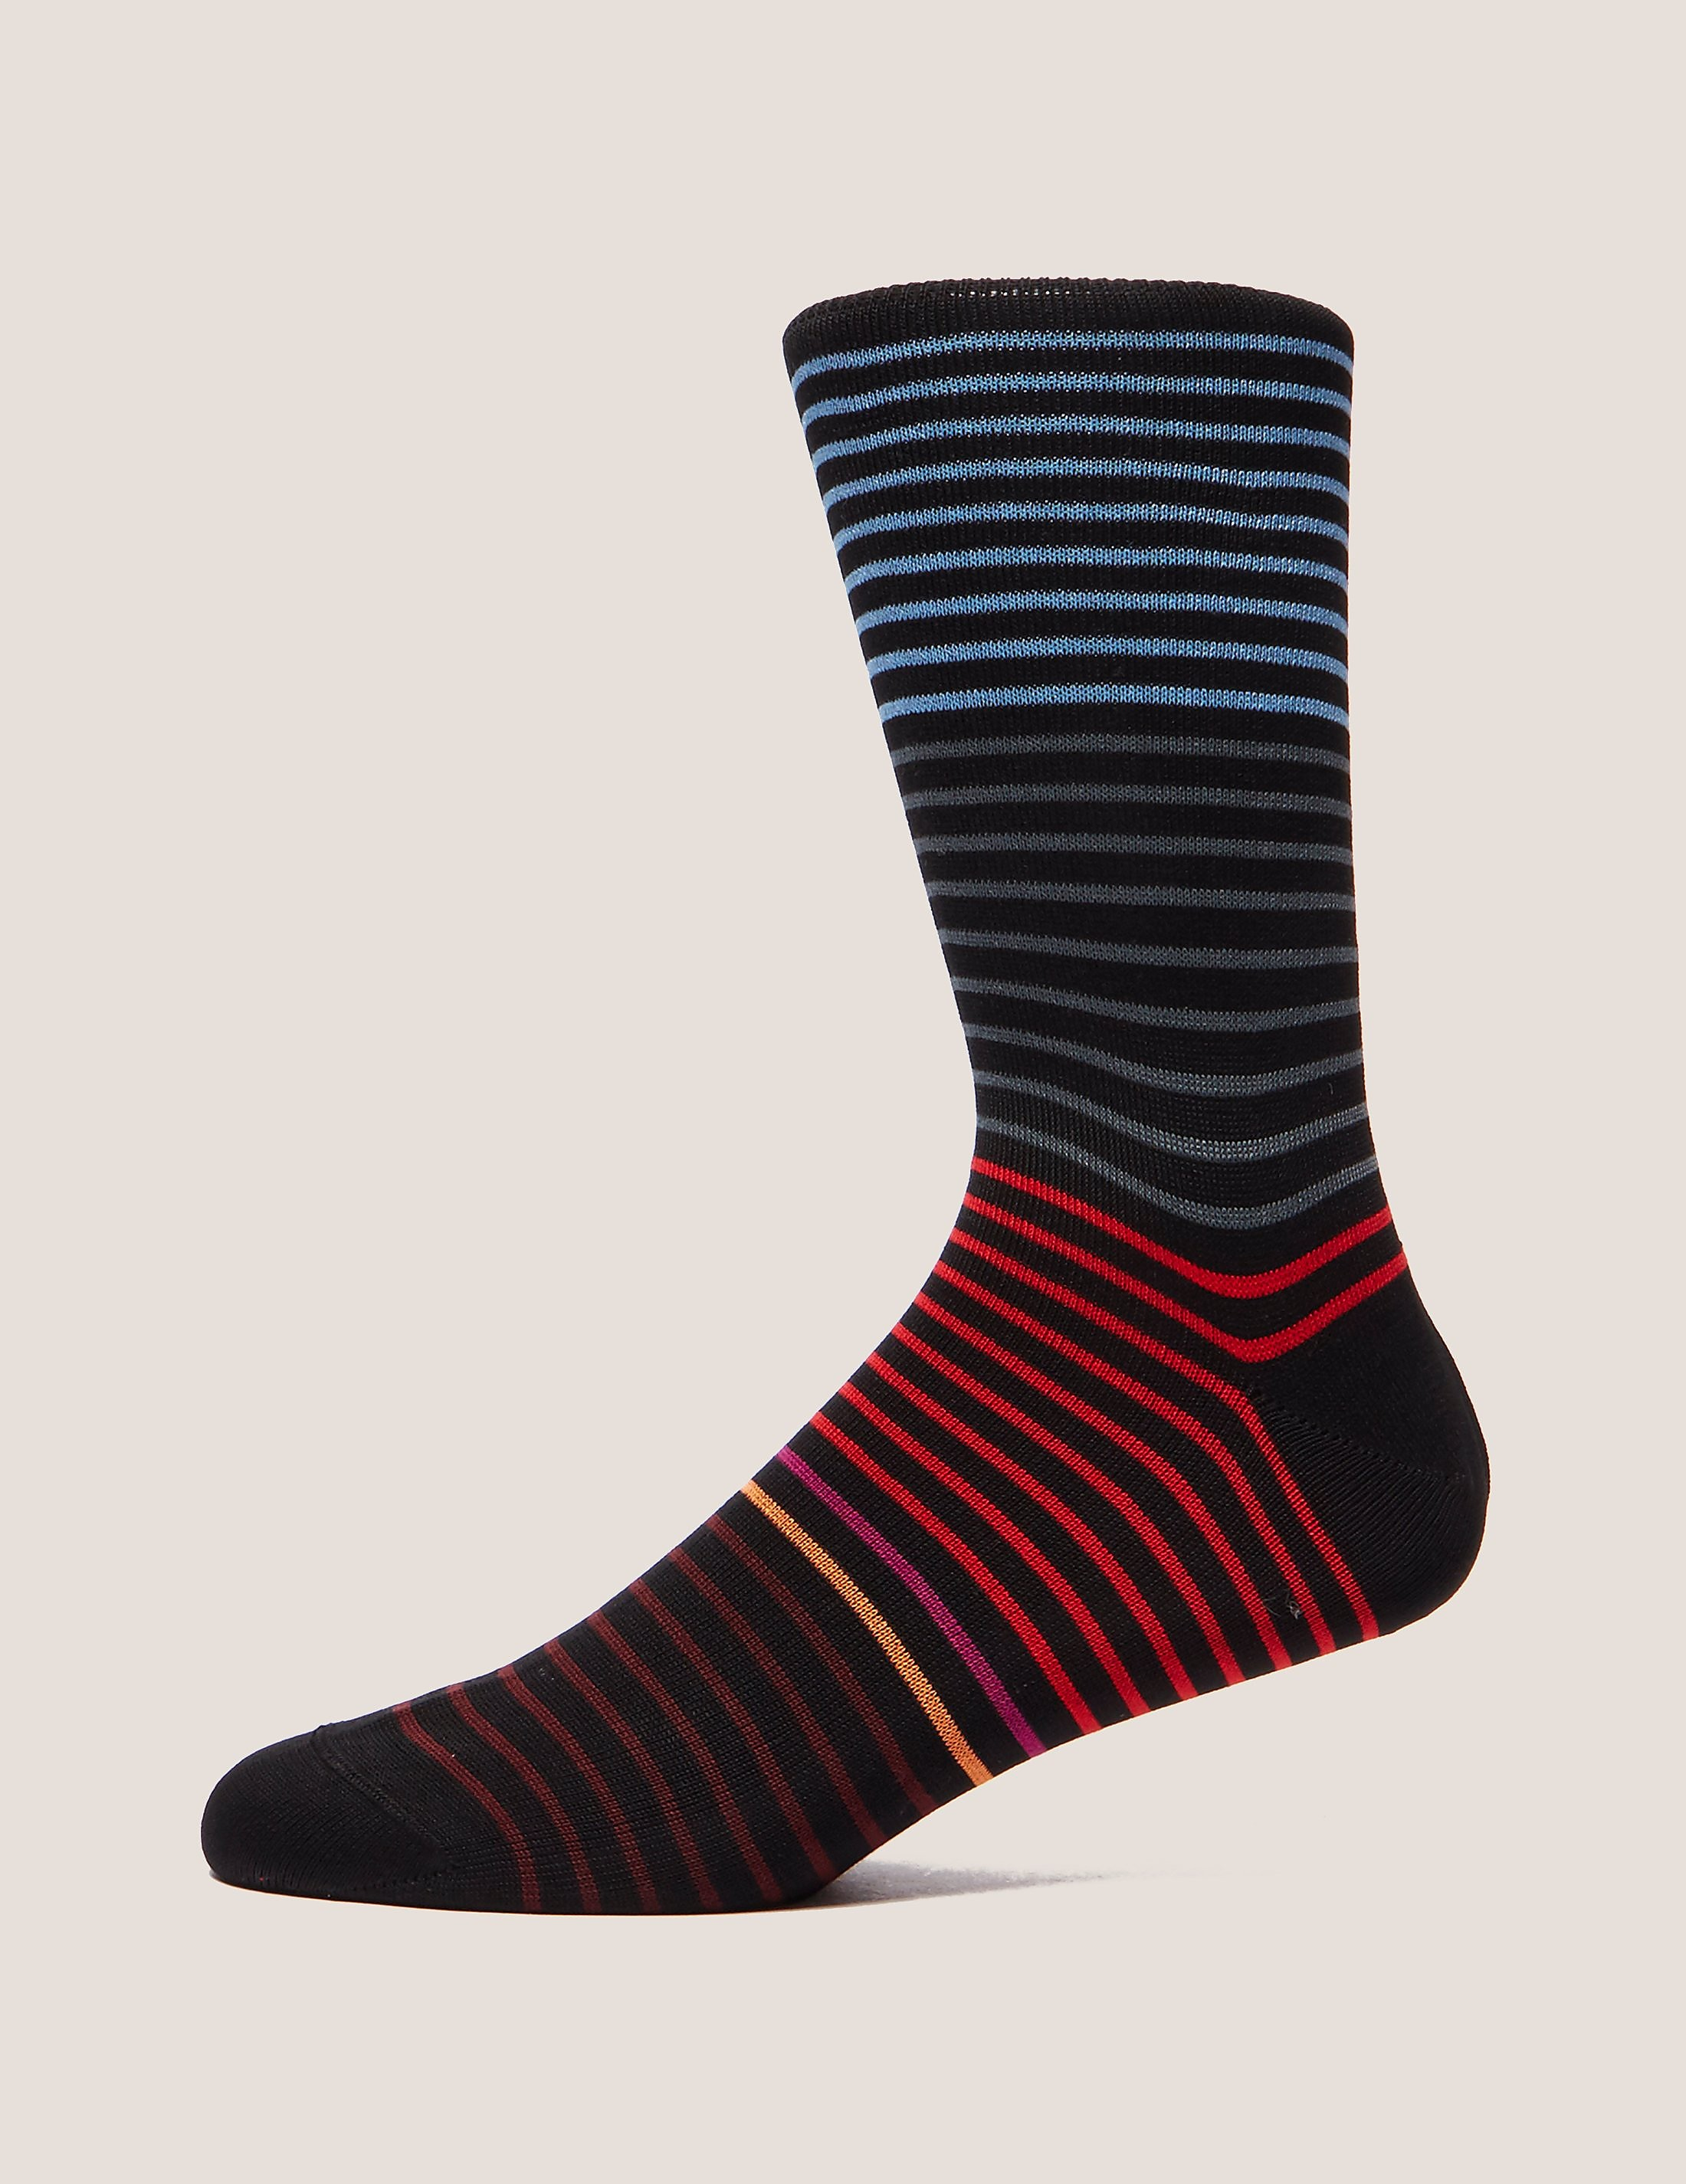 Paul Smith Pattern Socks